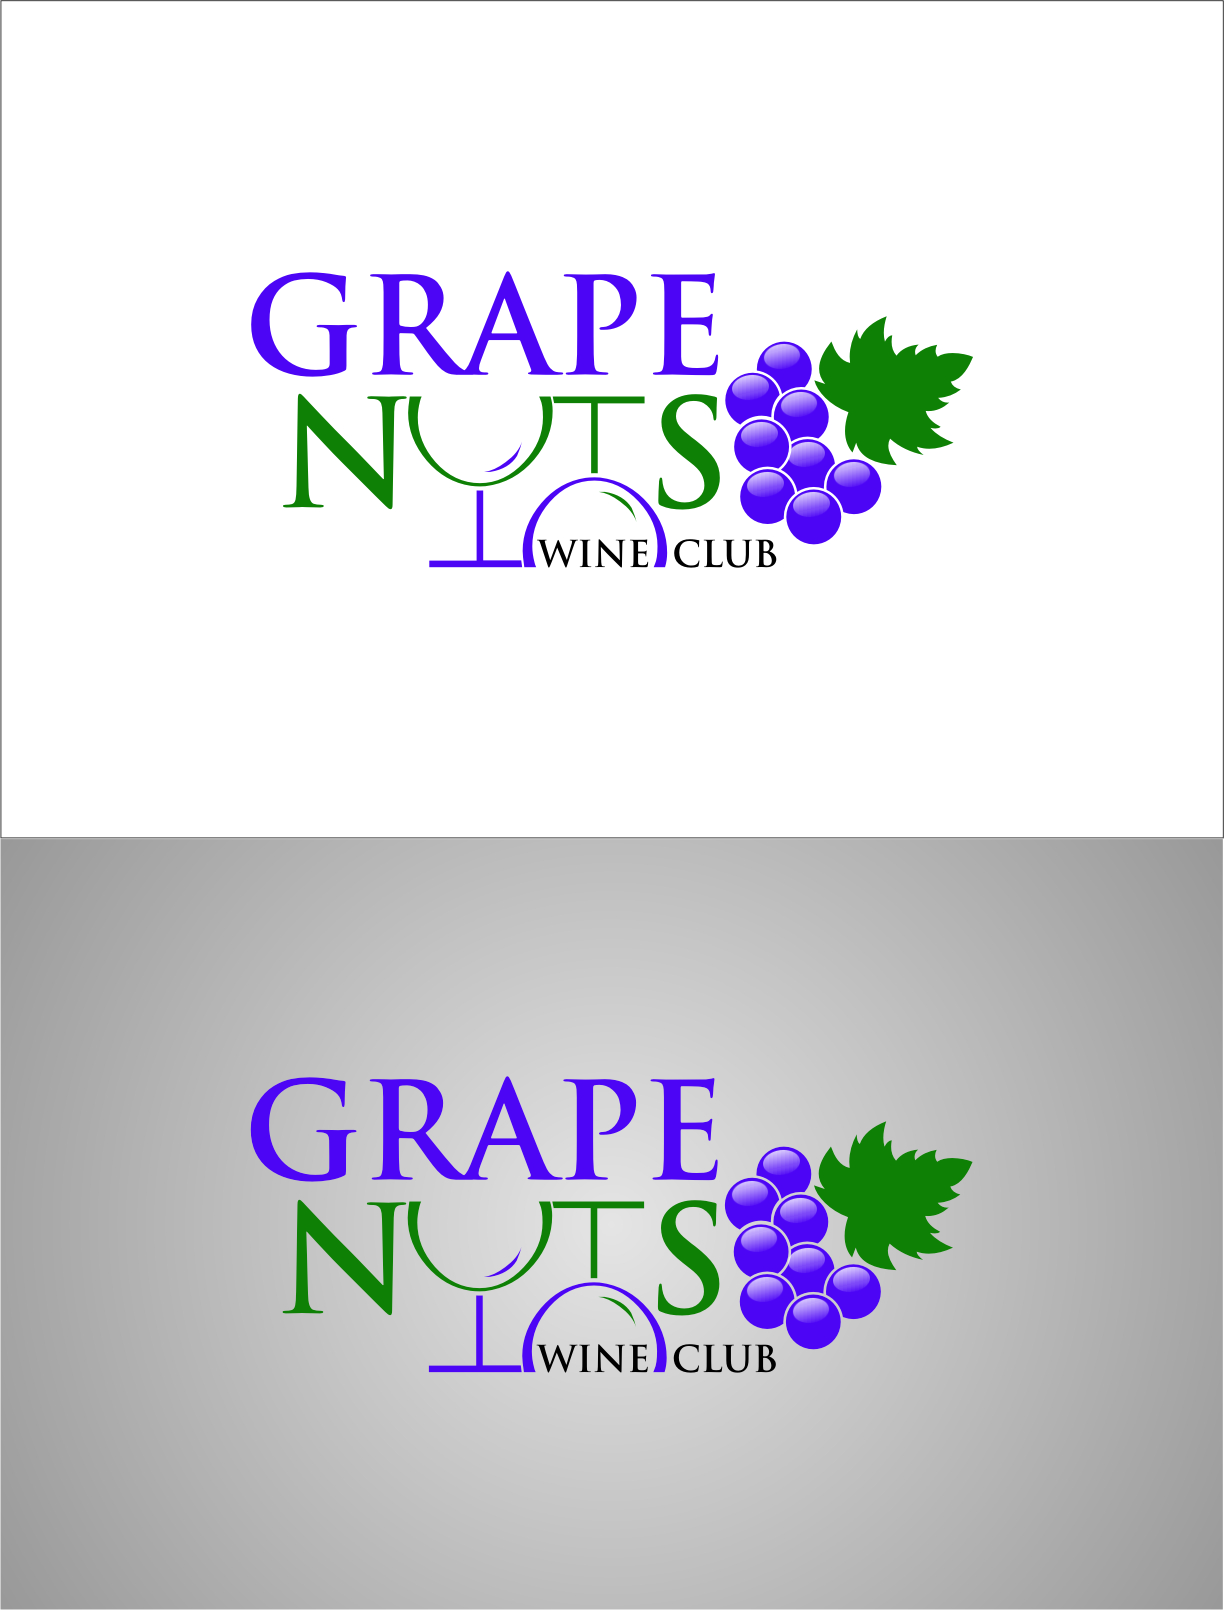 Logo Design by Ngepet_art - Entry No. 114 in the Logo Design Contest Artistic Logo Design for Grape Nuts Wine Club.